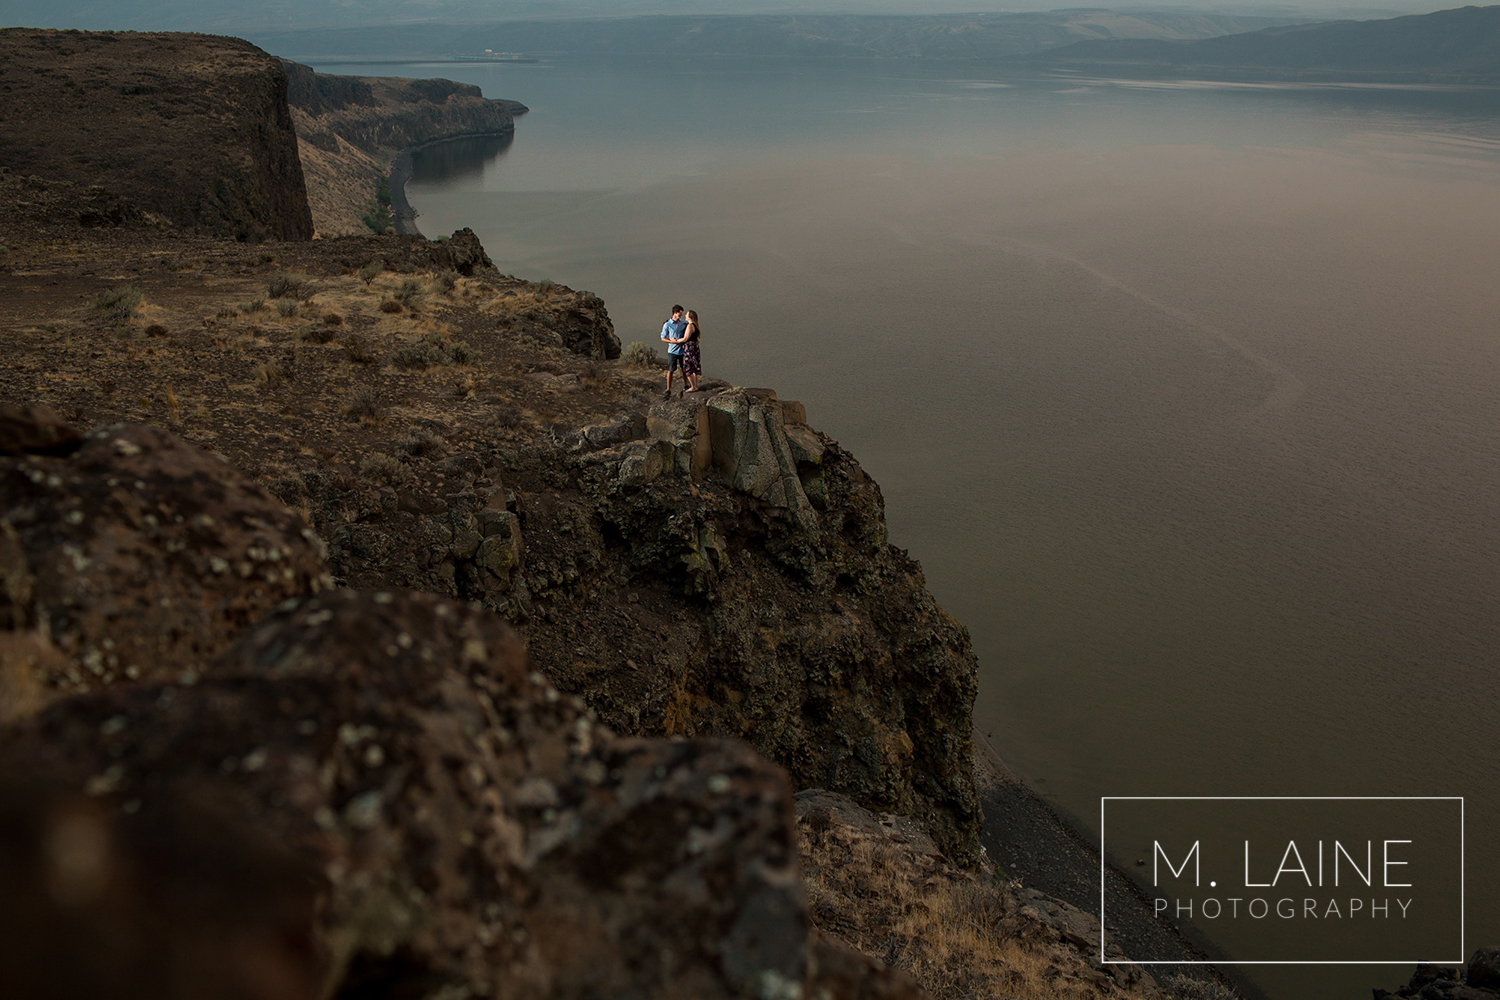 vantage-washington-engagement-0823-2.jpg